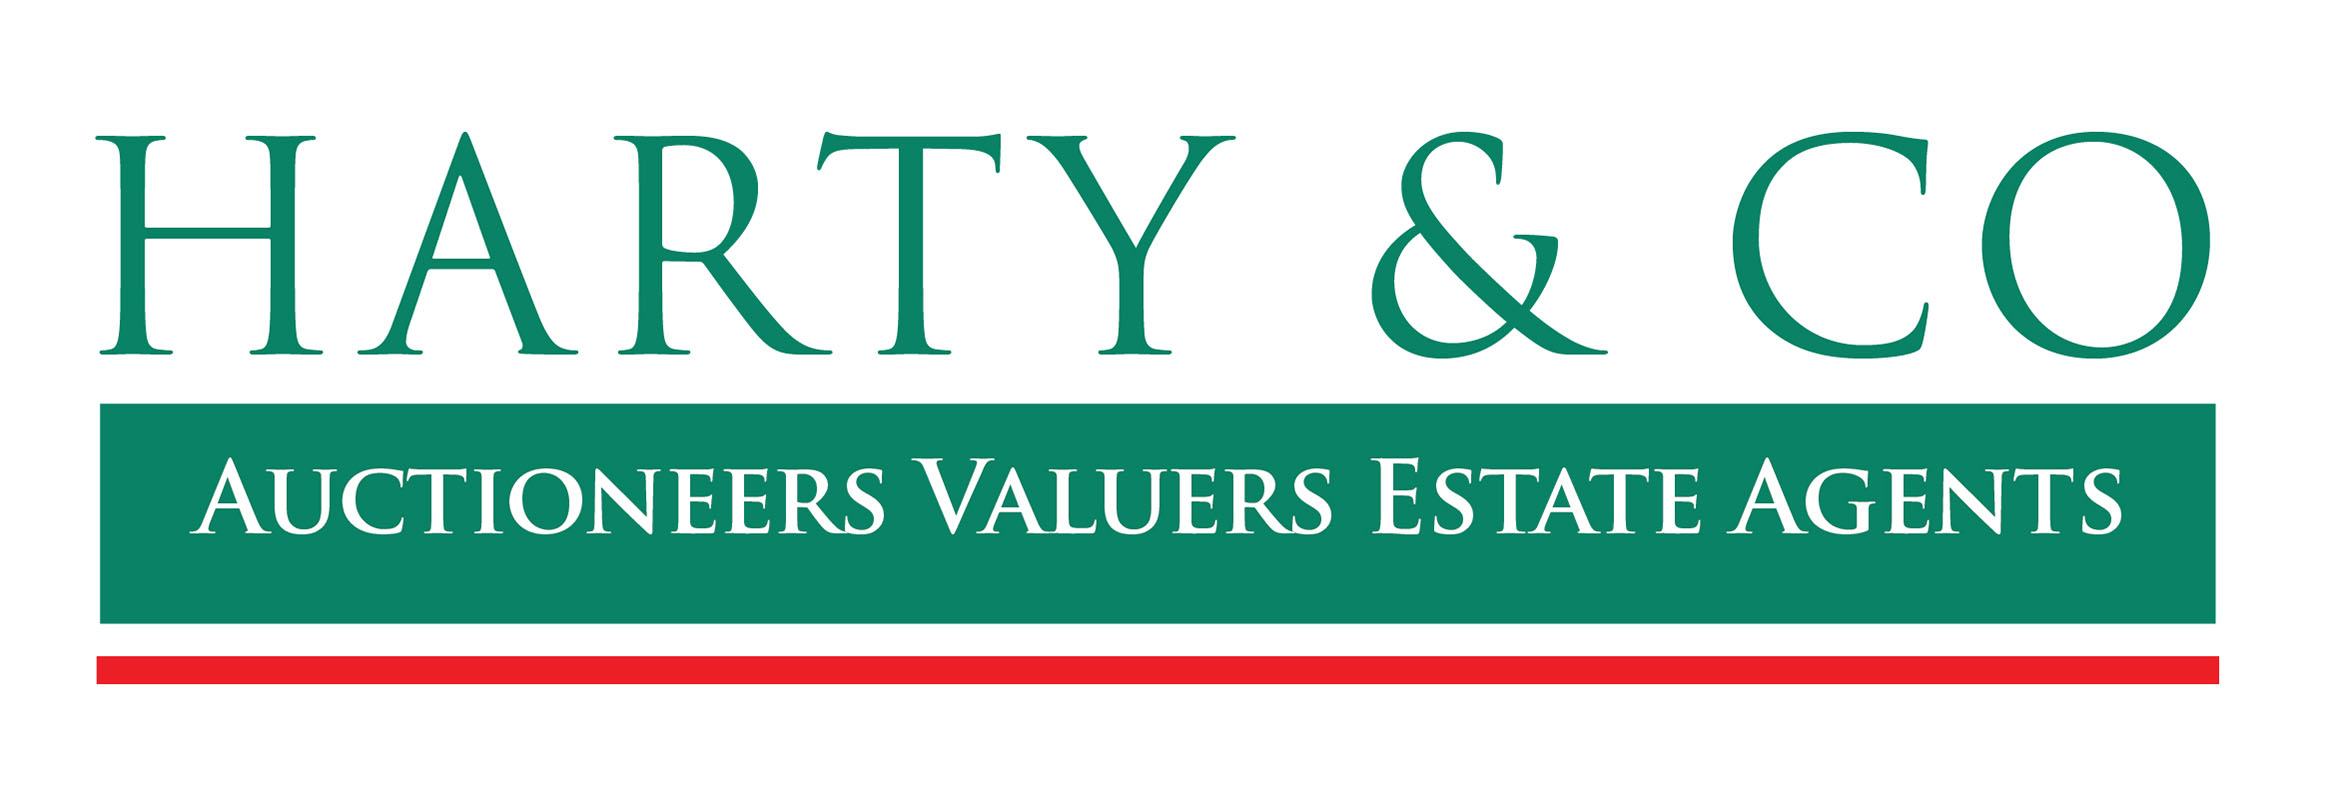 Harty & Co Auctioneers Valuers Estate Agents